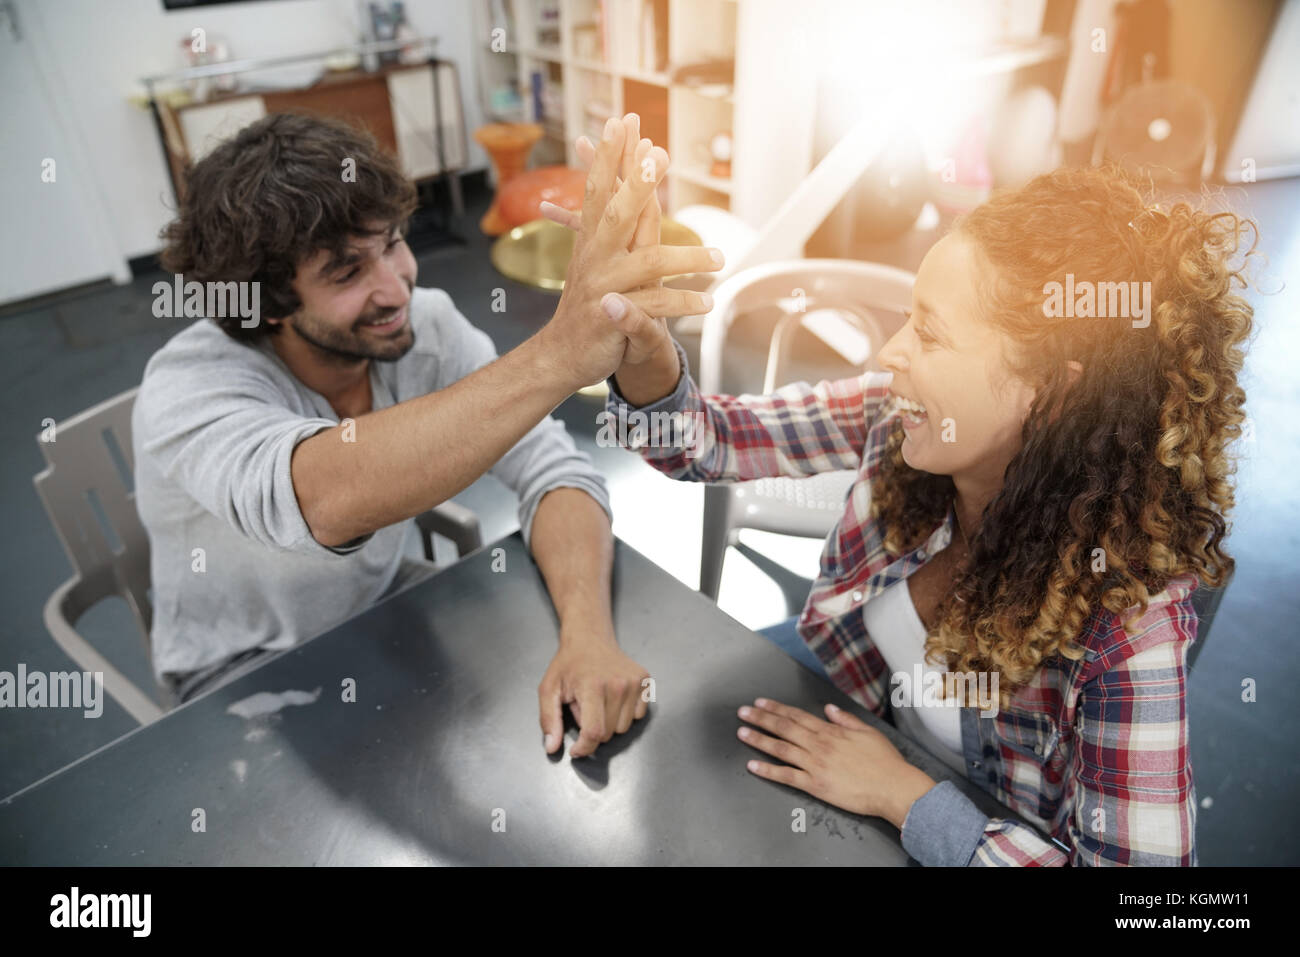 Co-workers  giving one another high five - Stock Image